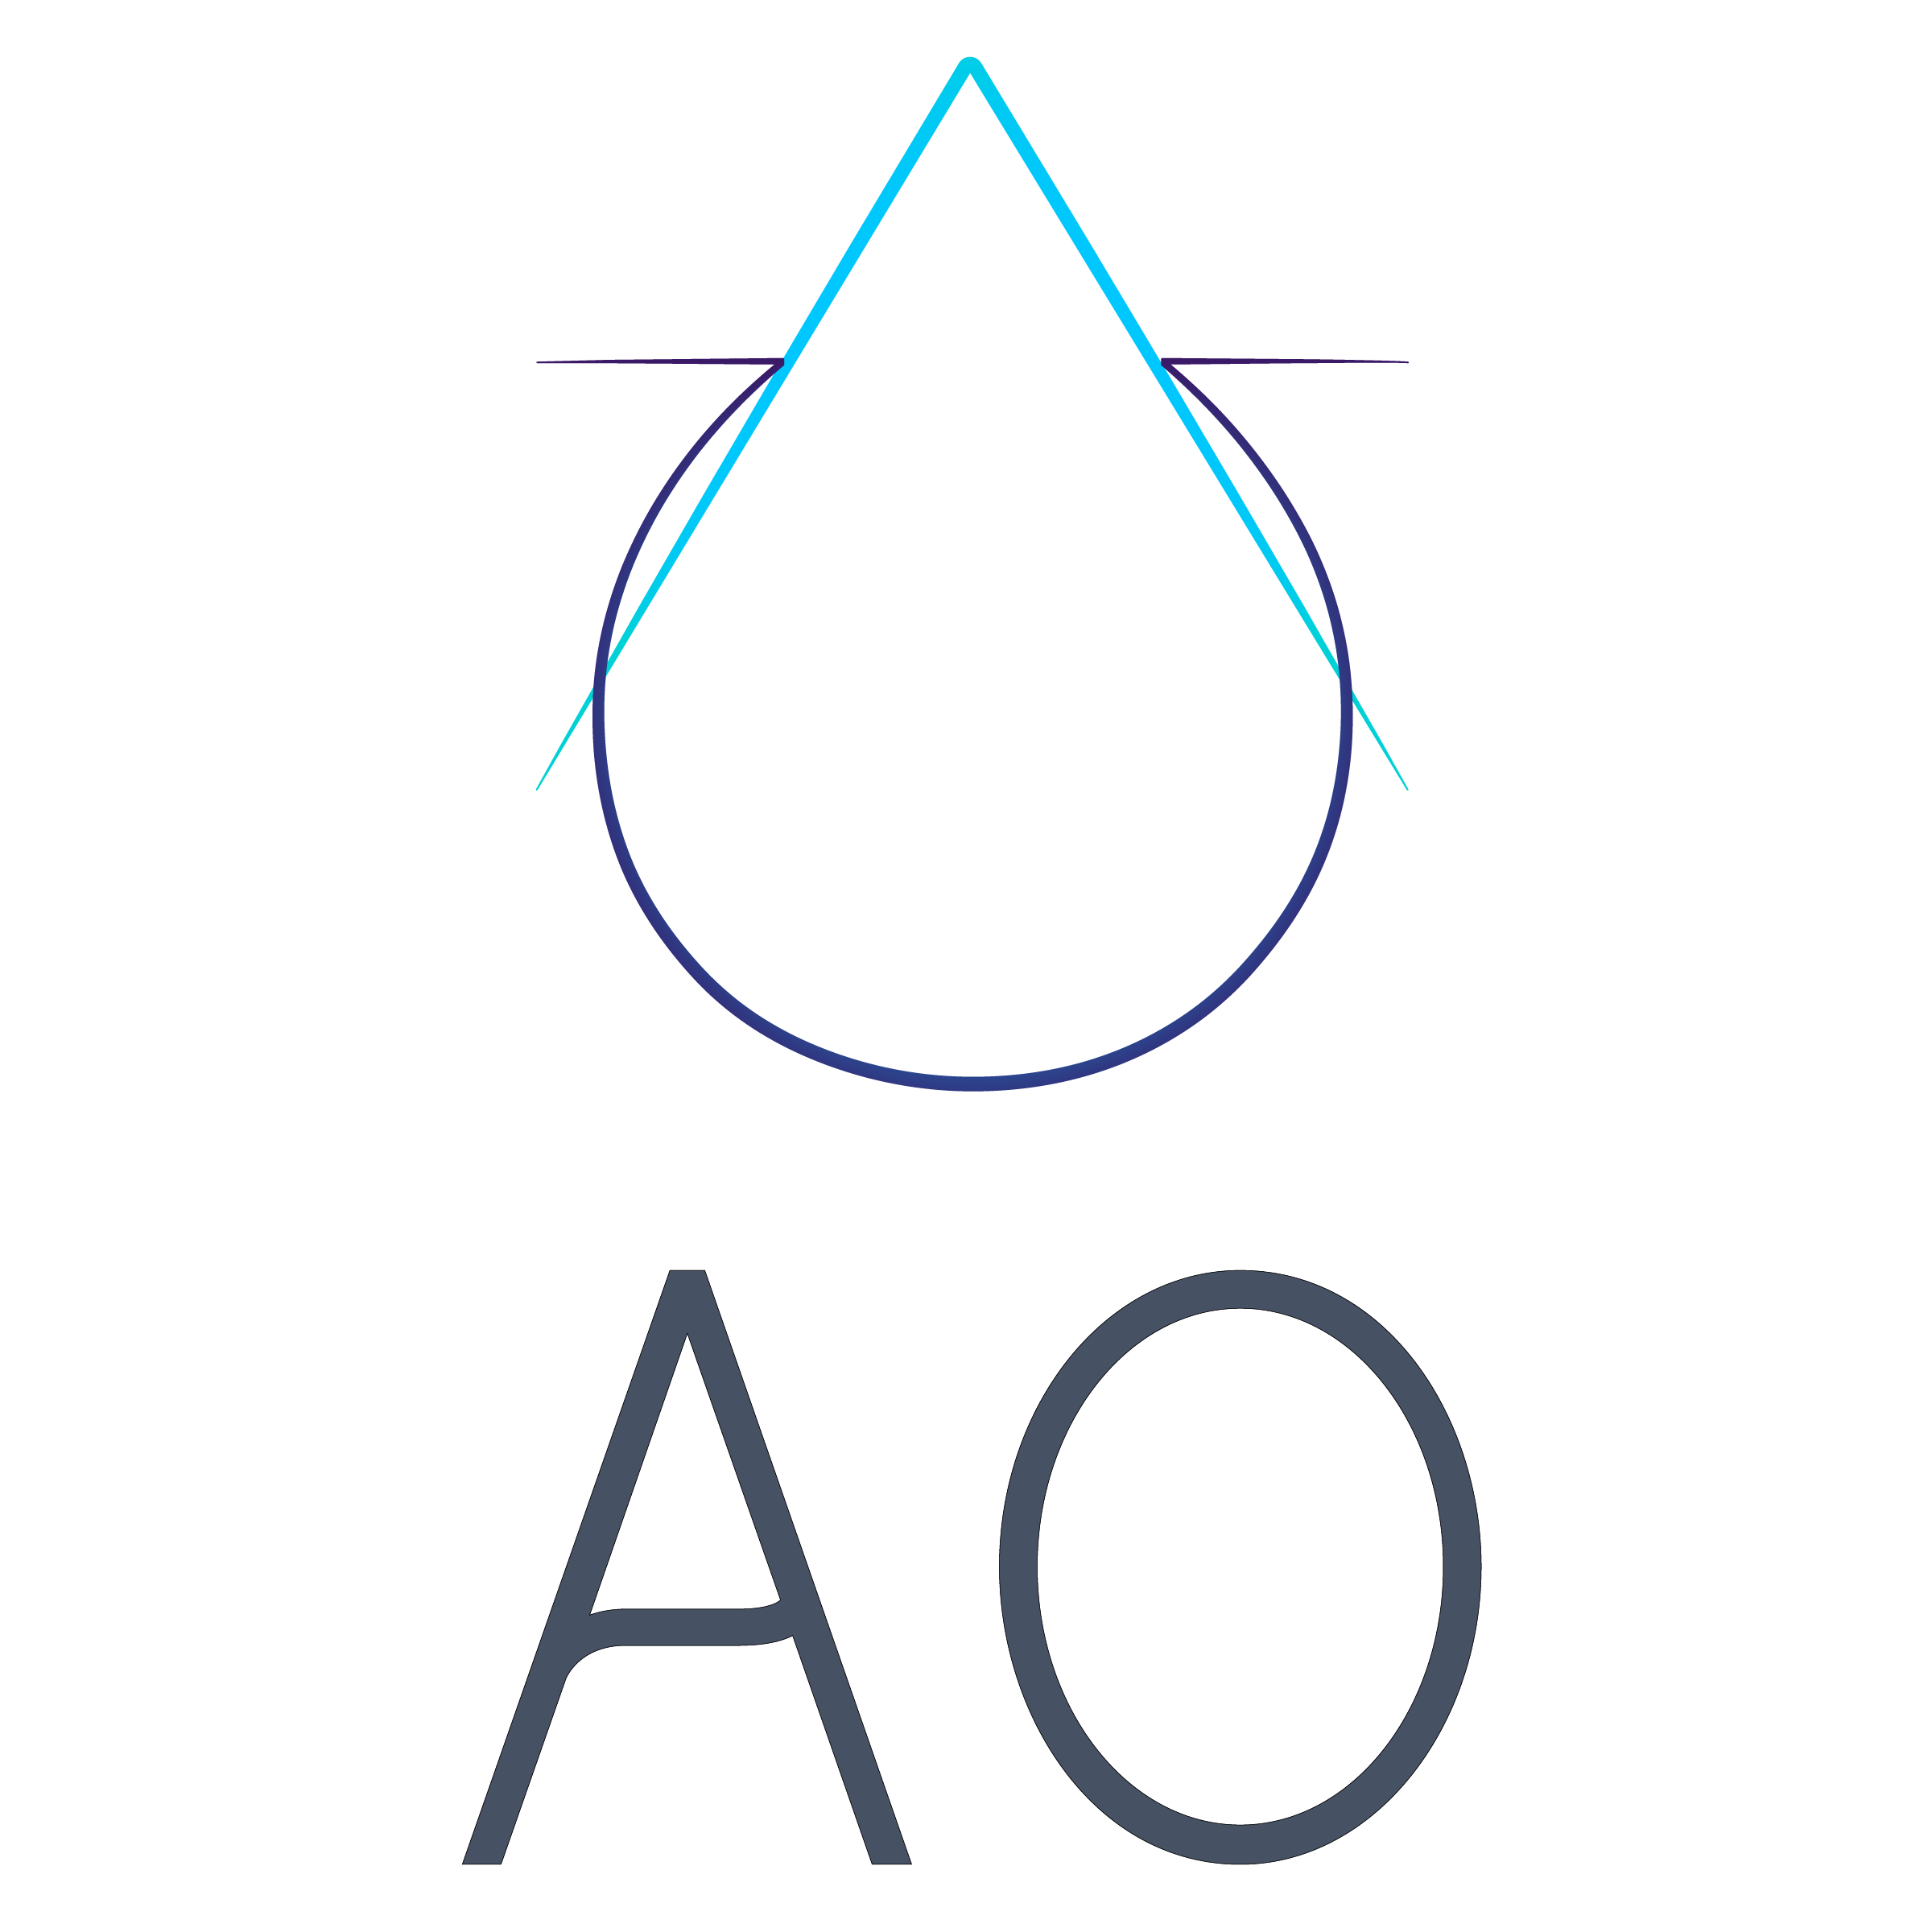 Alpha Omega Water Technologies